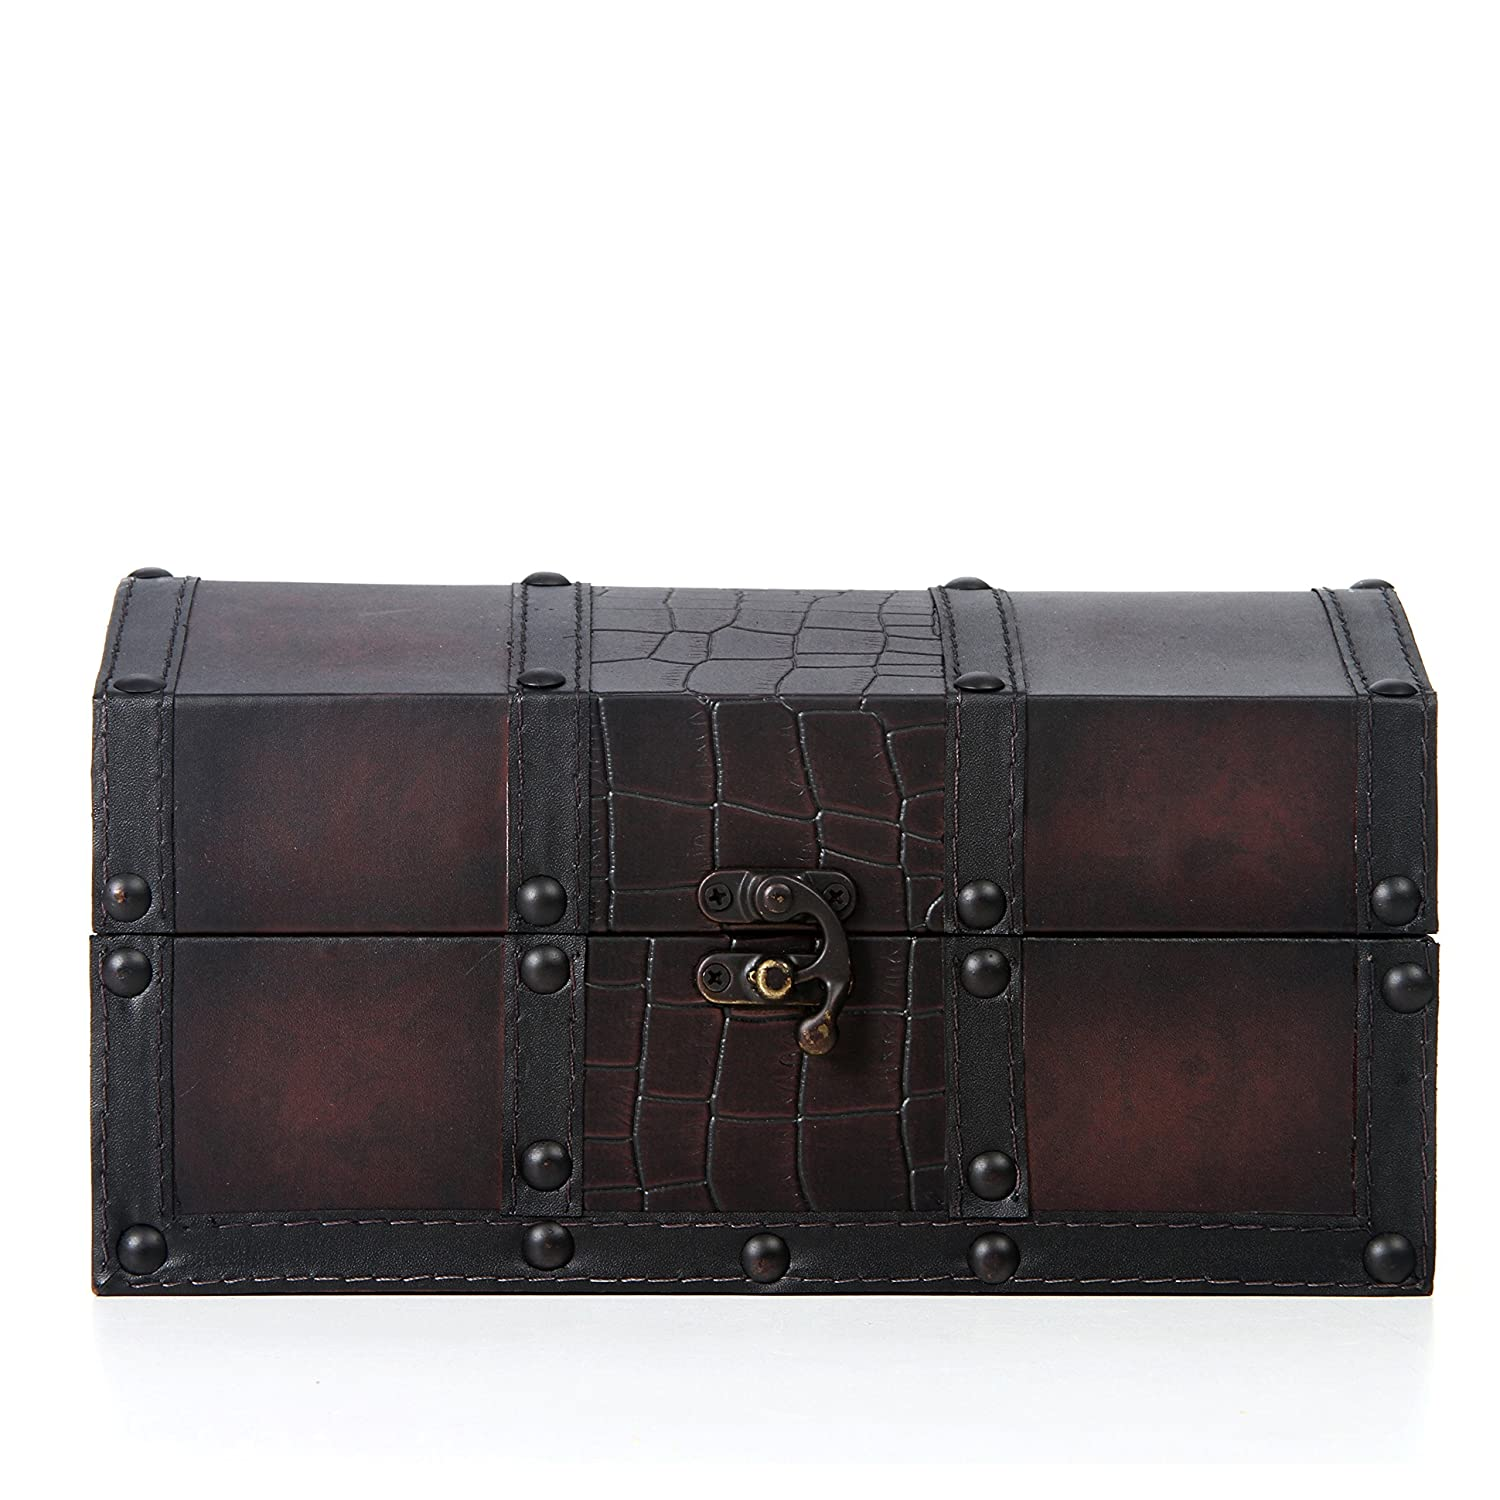 """Hosley Decorative Wooden Storage Box with Leather Clasp - 9"""" Long. Ideal Gift for Wedding, Special Occasion, Study, Home, Den, Dorm, Spa, Aromatherapy Settings, Memories O4"""